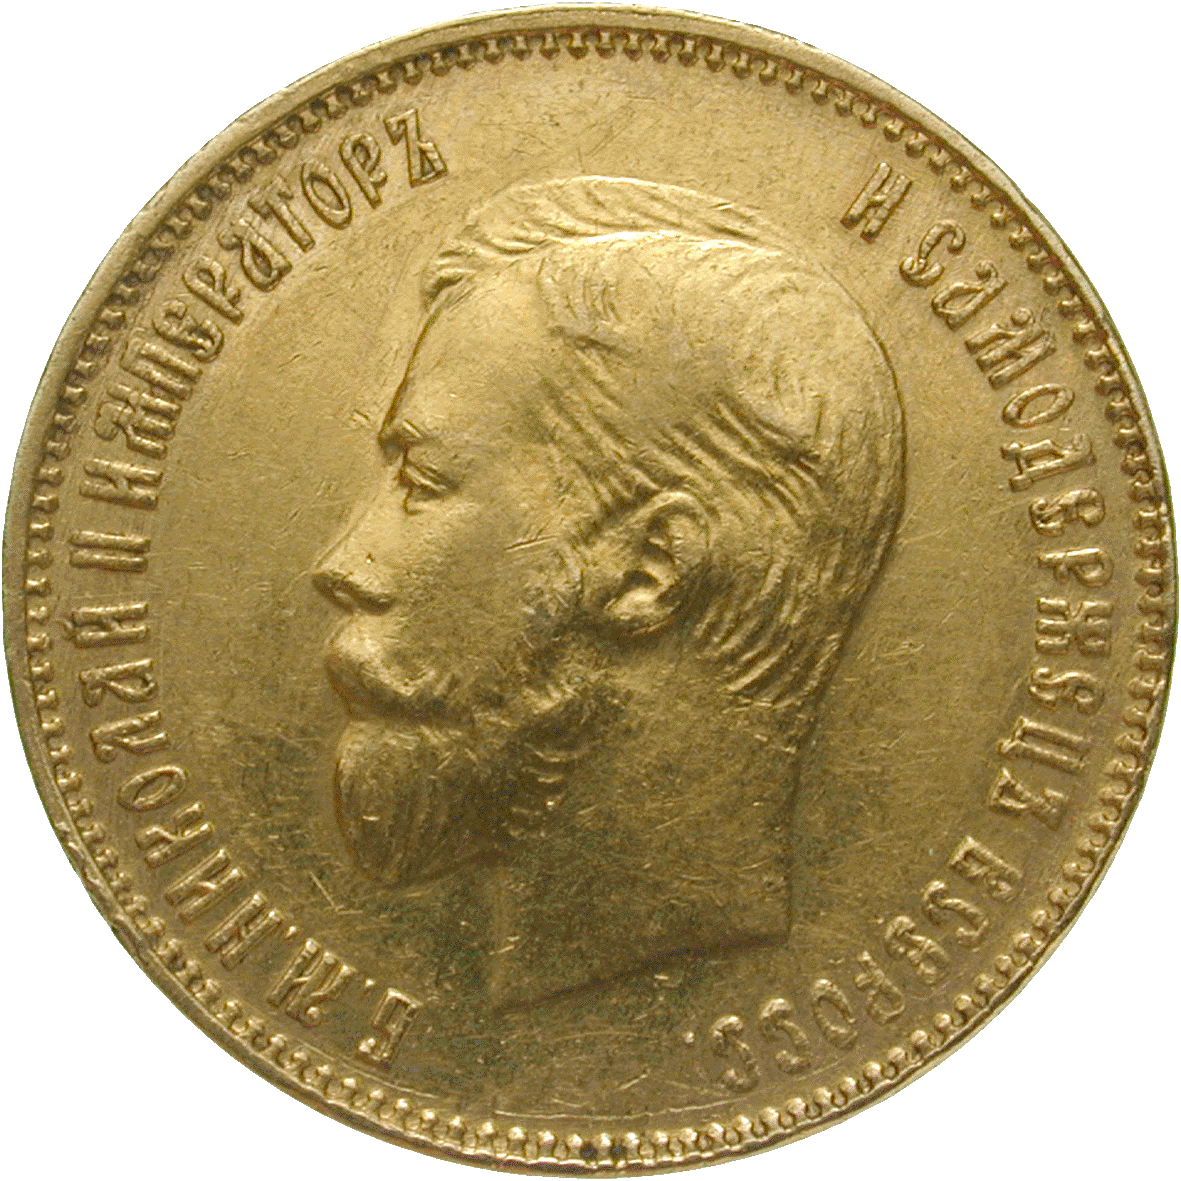 Russian Empire, Nicholas II 10 Rubles 1911 (obverse)